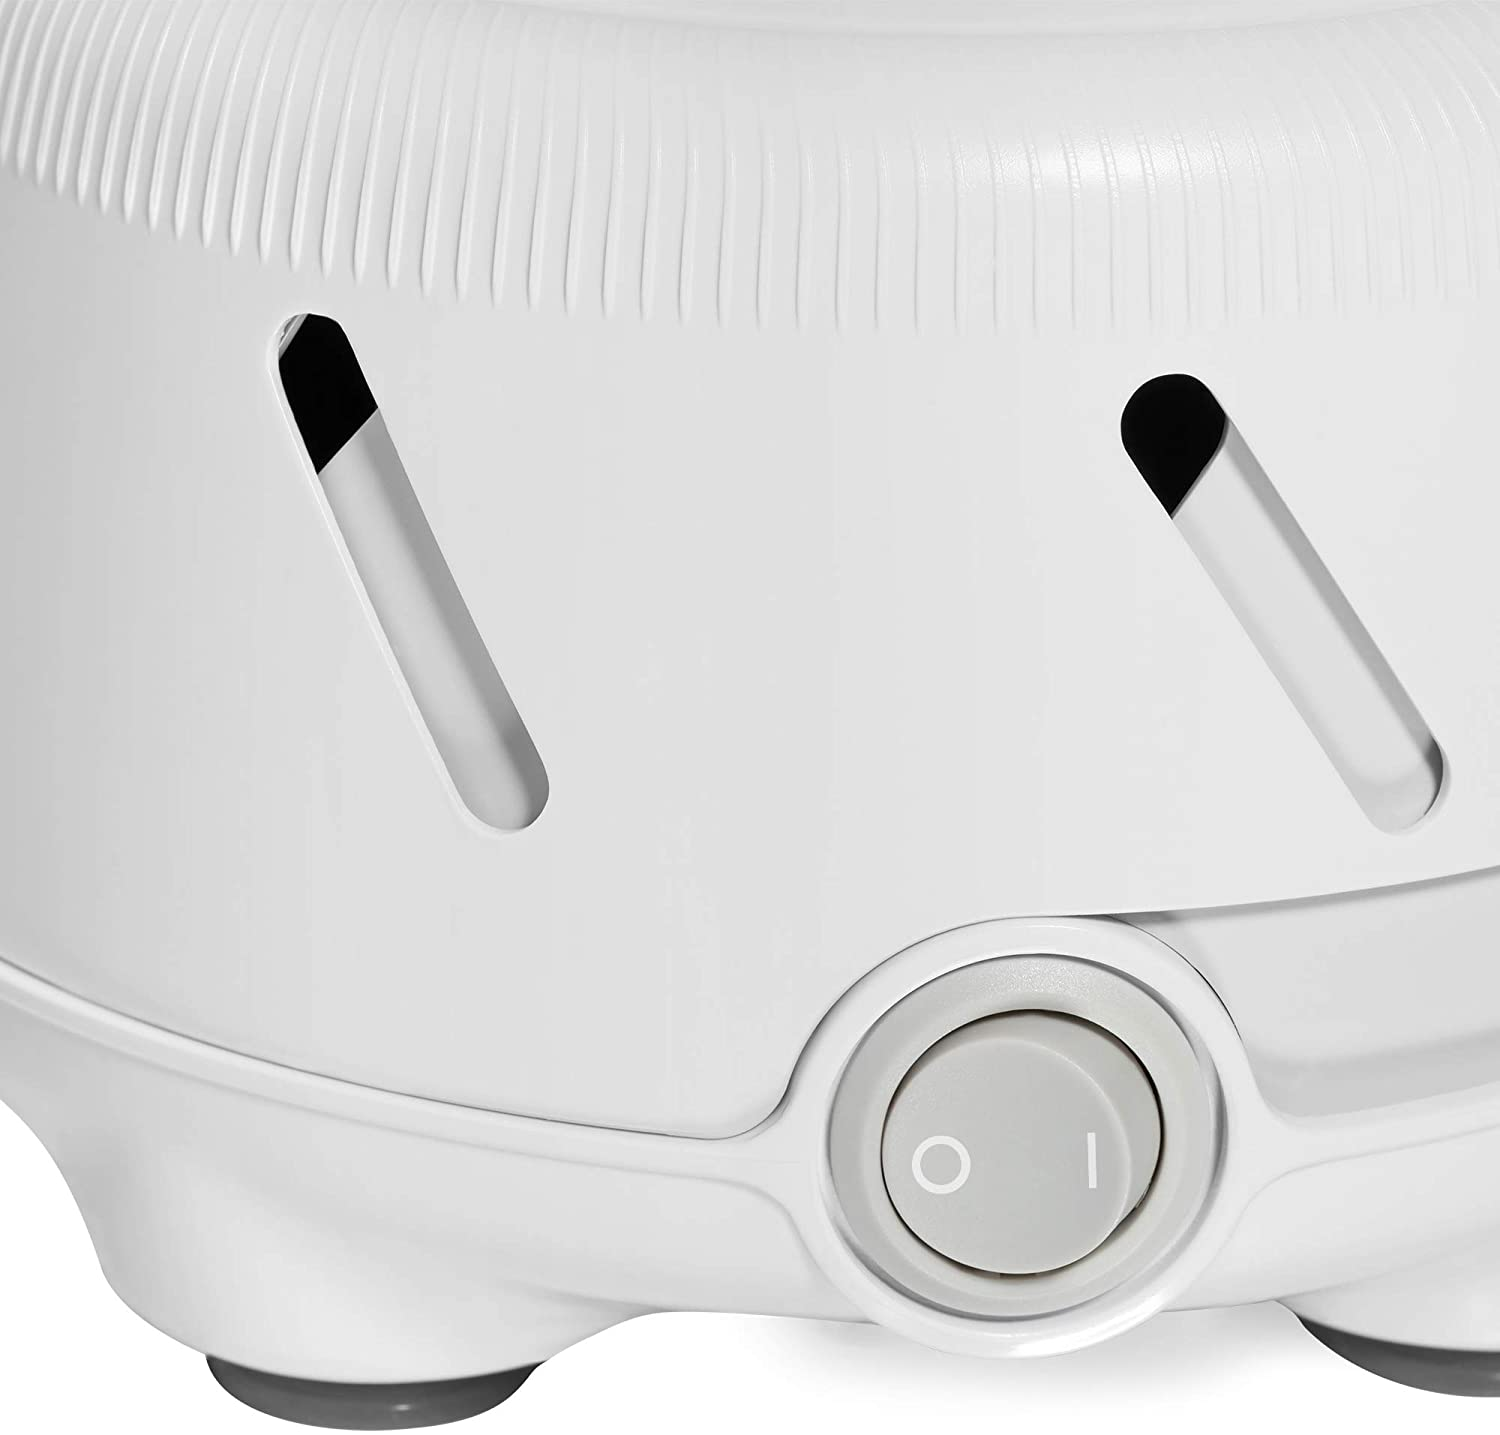 Marpac Dohm UNO White Noise Machine Real Fan Inside for Non-Looping White Noise Sound Machine for Travel, Office Privacy, Sleep Therapy for Adults Baby 101 Night Trial